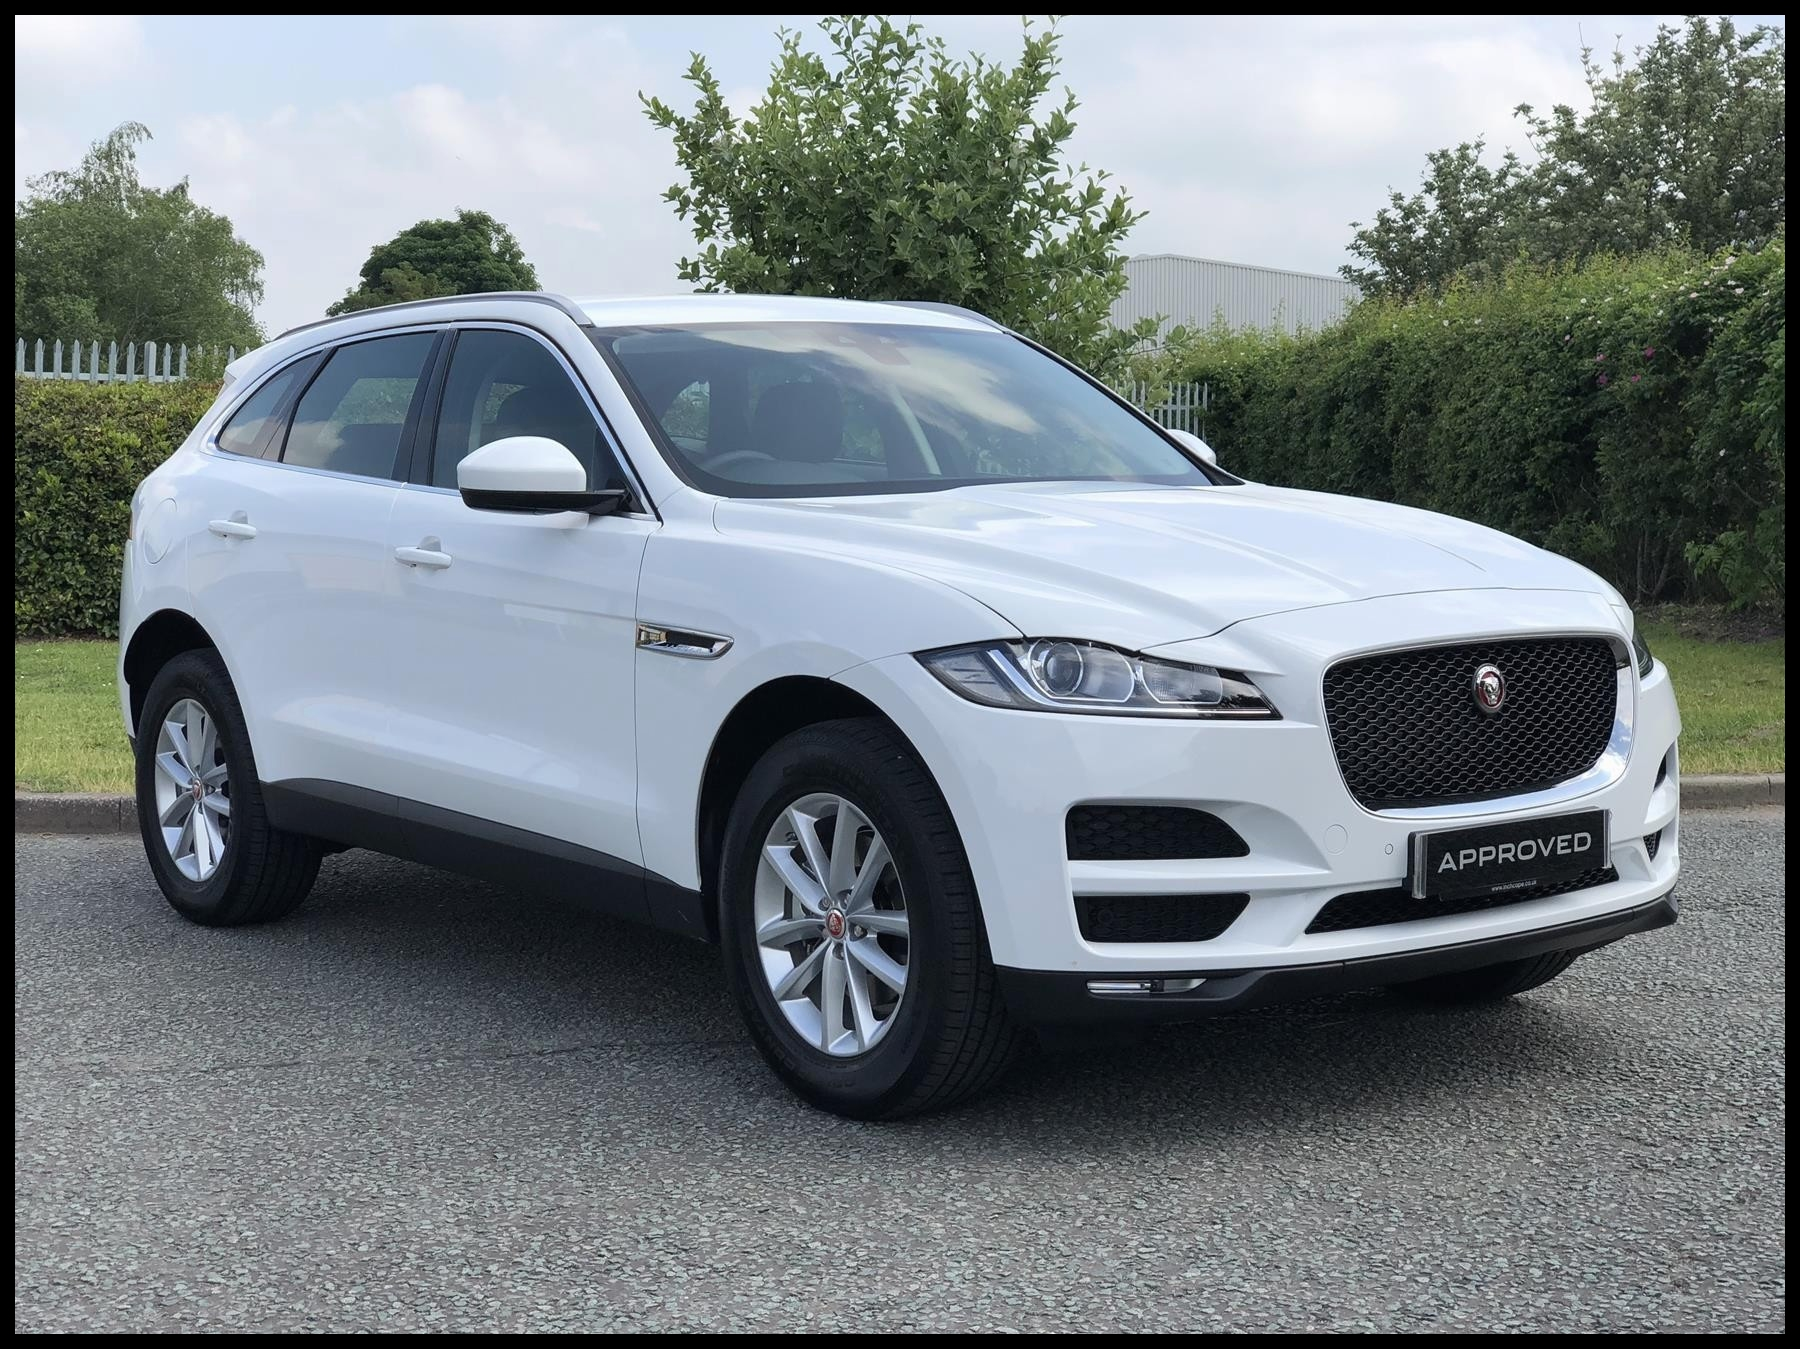 Used Smart Car Beautiful Jaguar for Sale Luxury Used 2018 Jaguar F Pace 2 0d Prestige